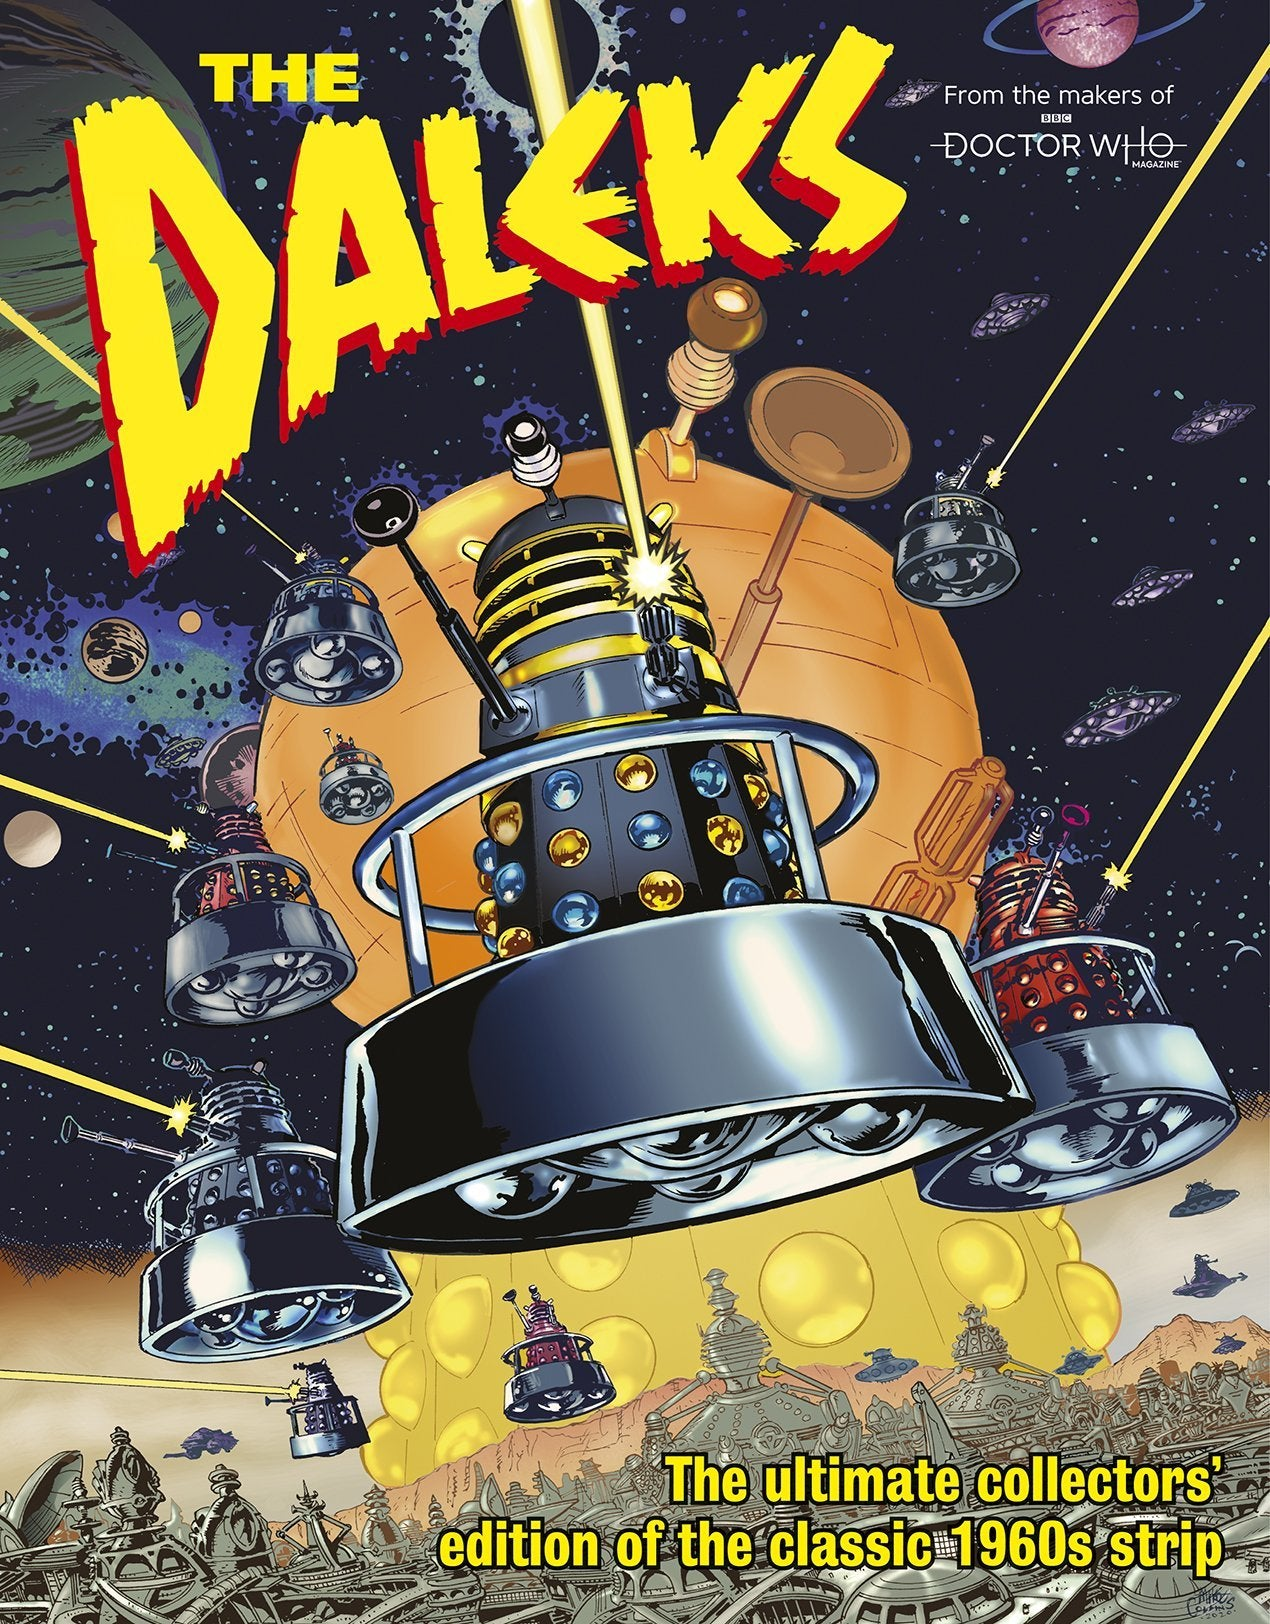 Doctor Who Magazine: THE DALEKS Bookazine - The Gerry Anderson Store